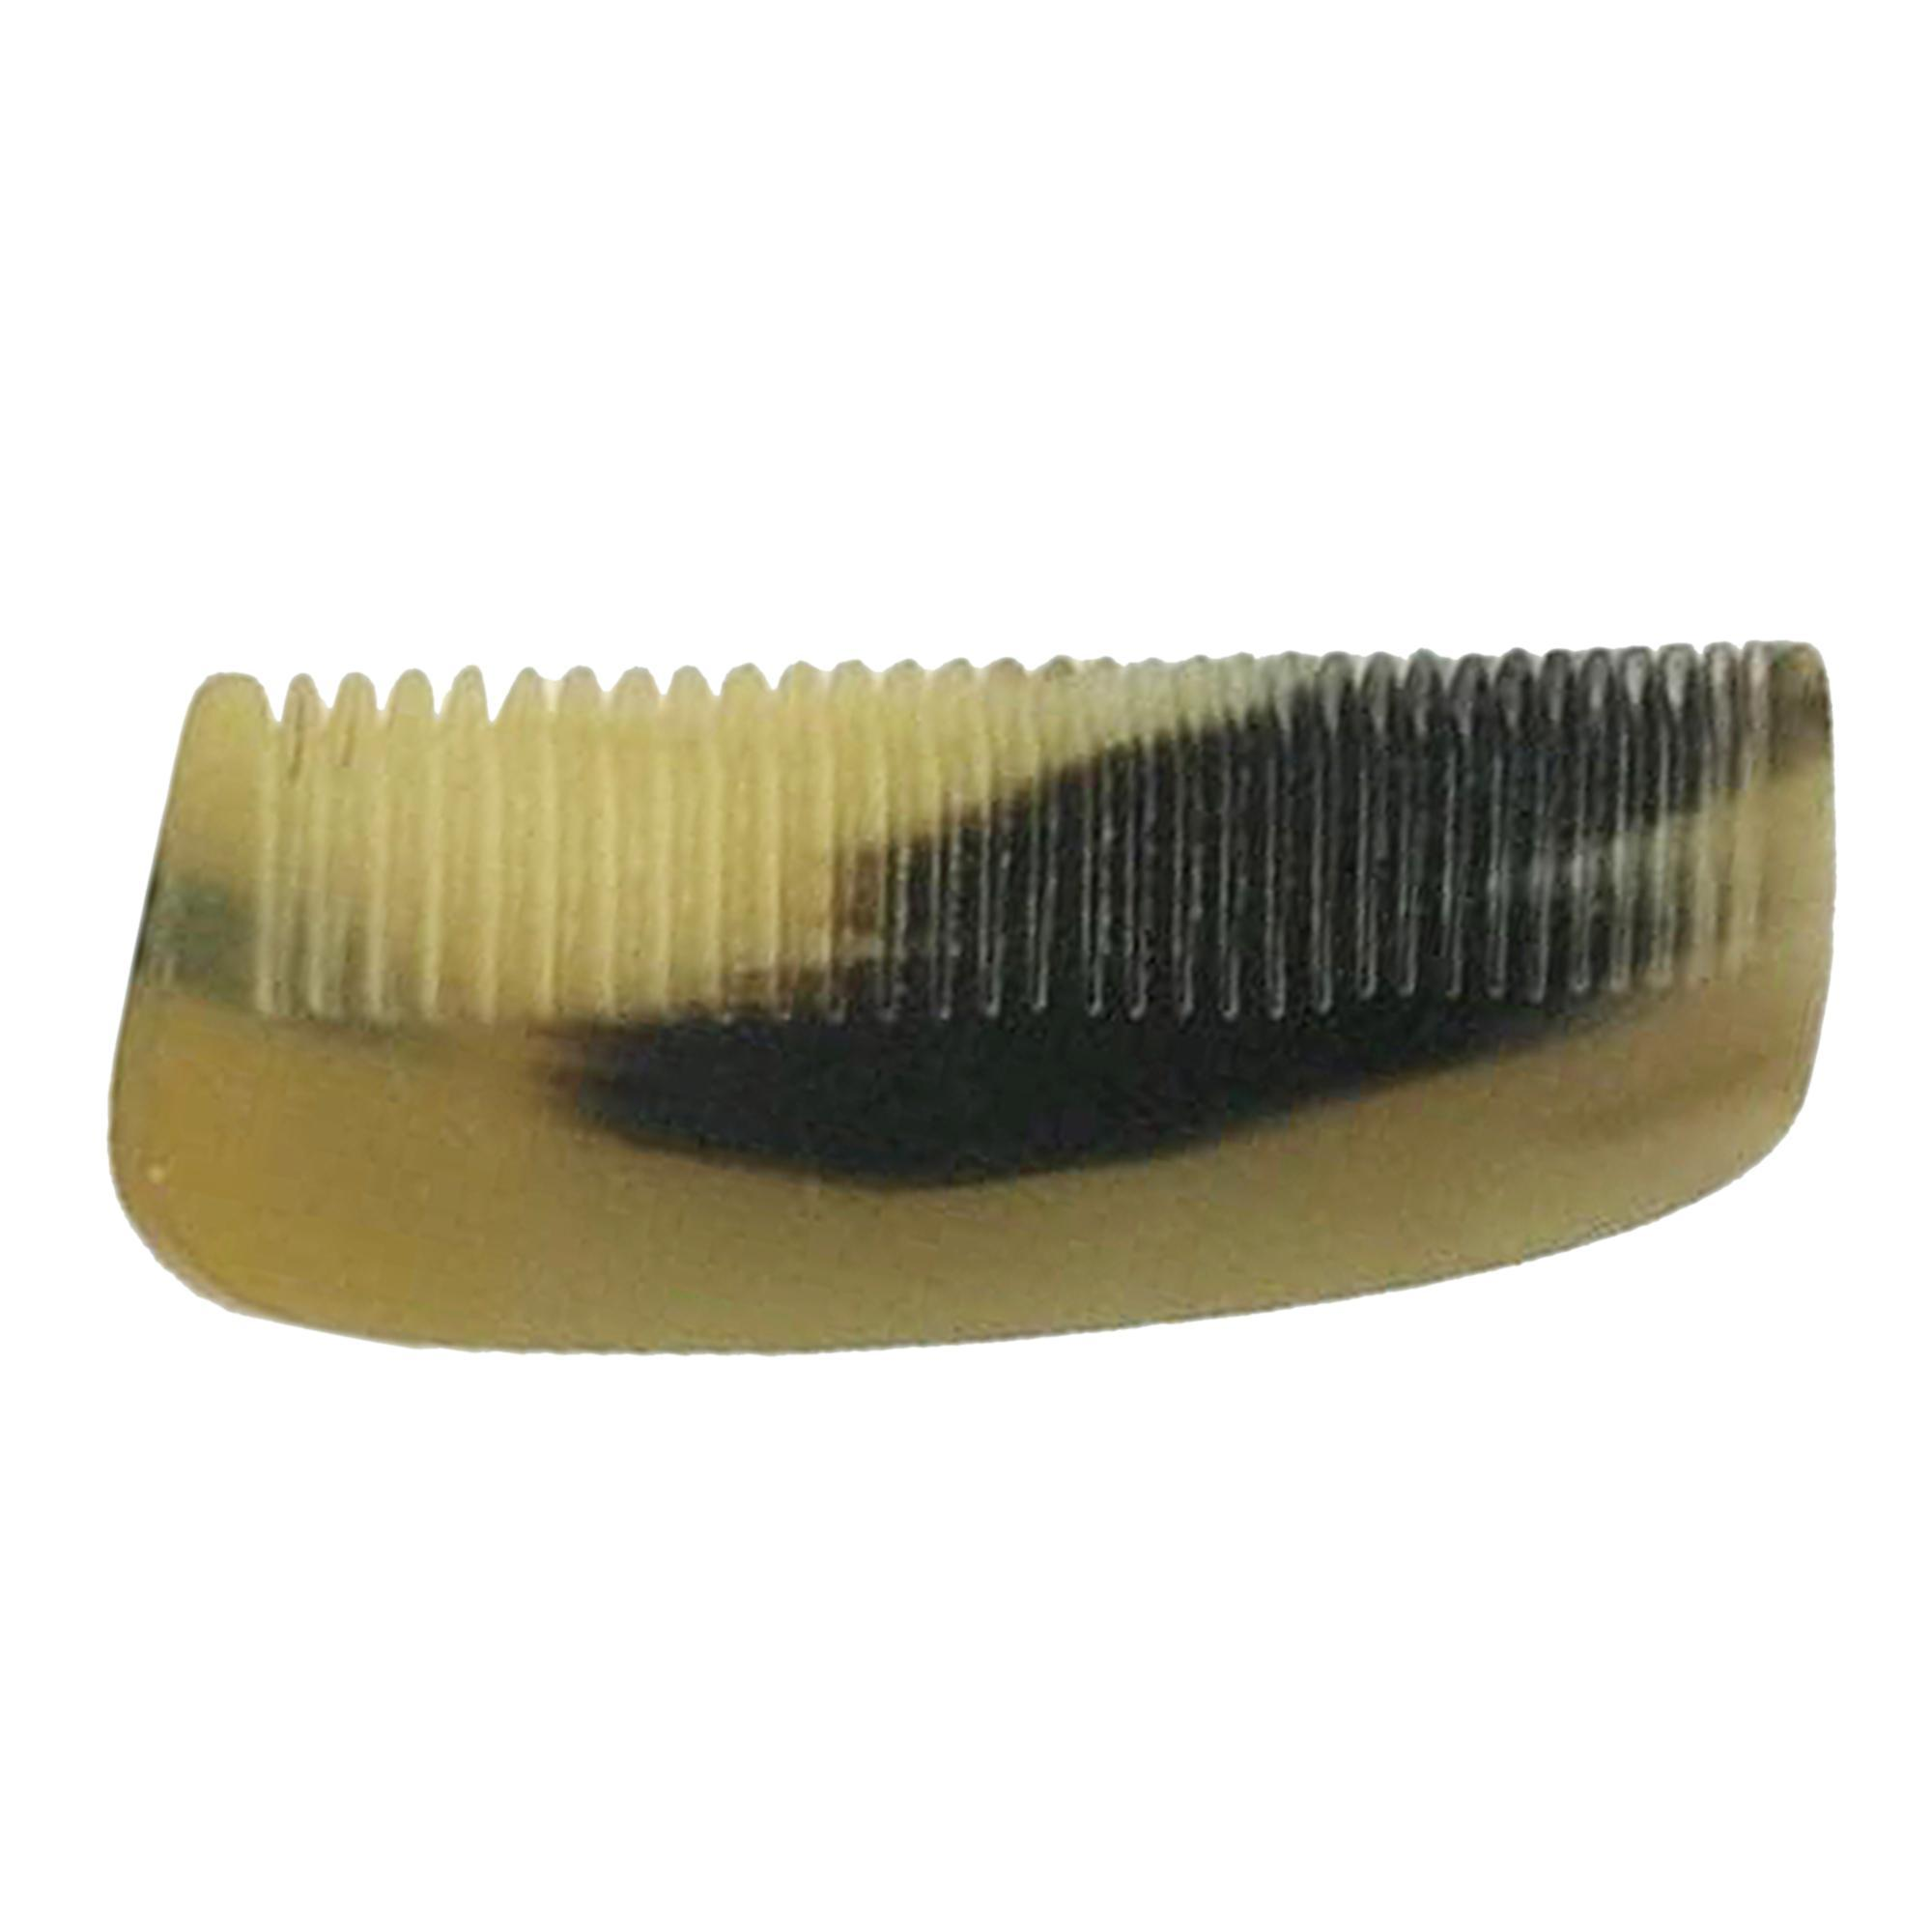 100% Handmade Anti Static Natural Sheep Horn Comb Without Handle- Professional Detangling Massage Comb